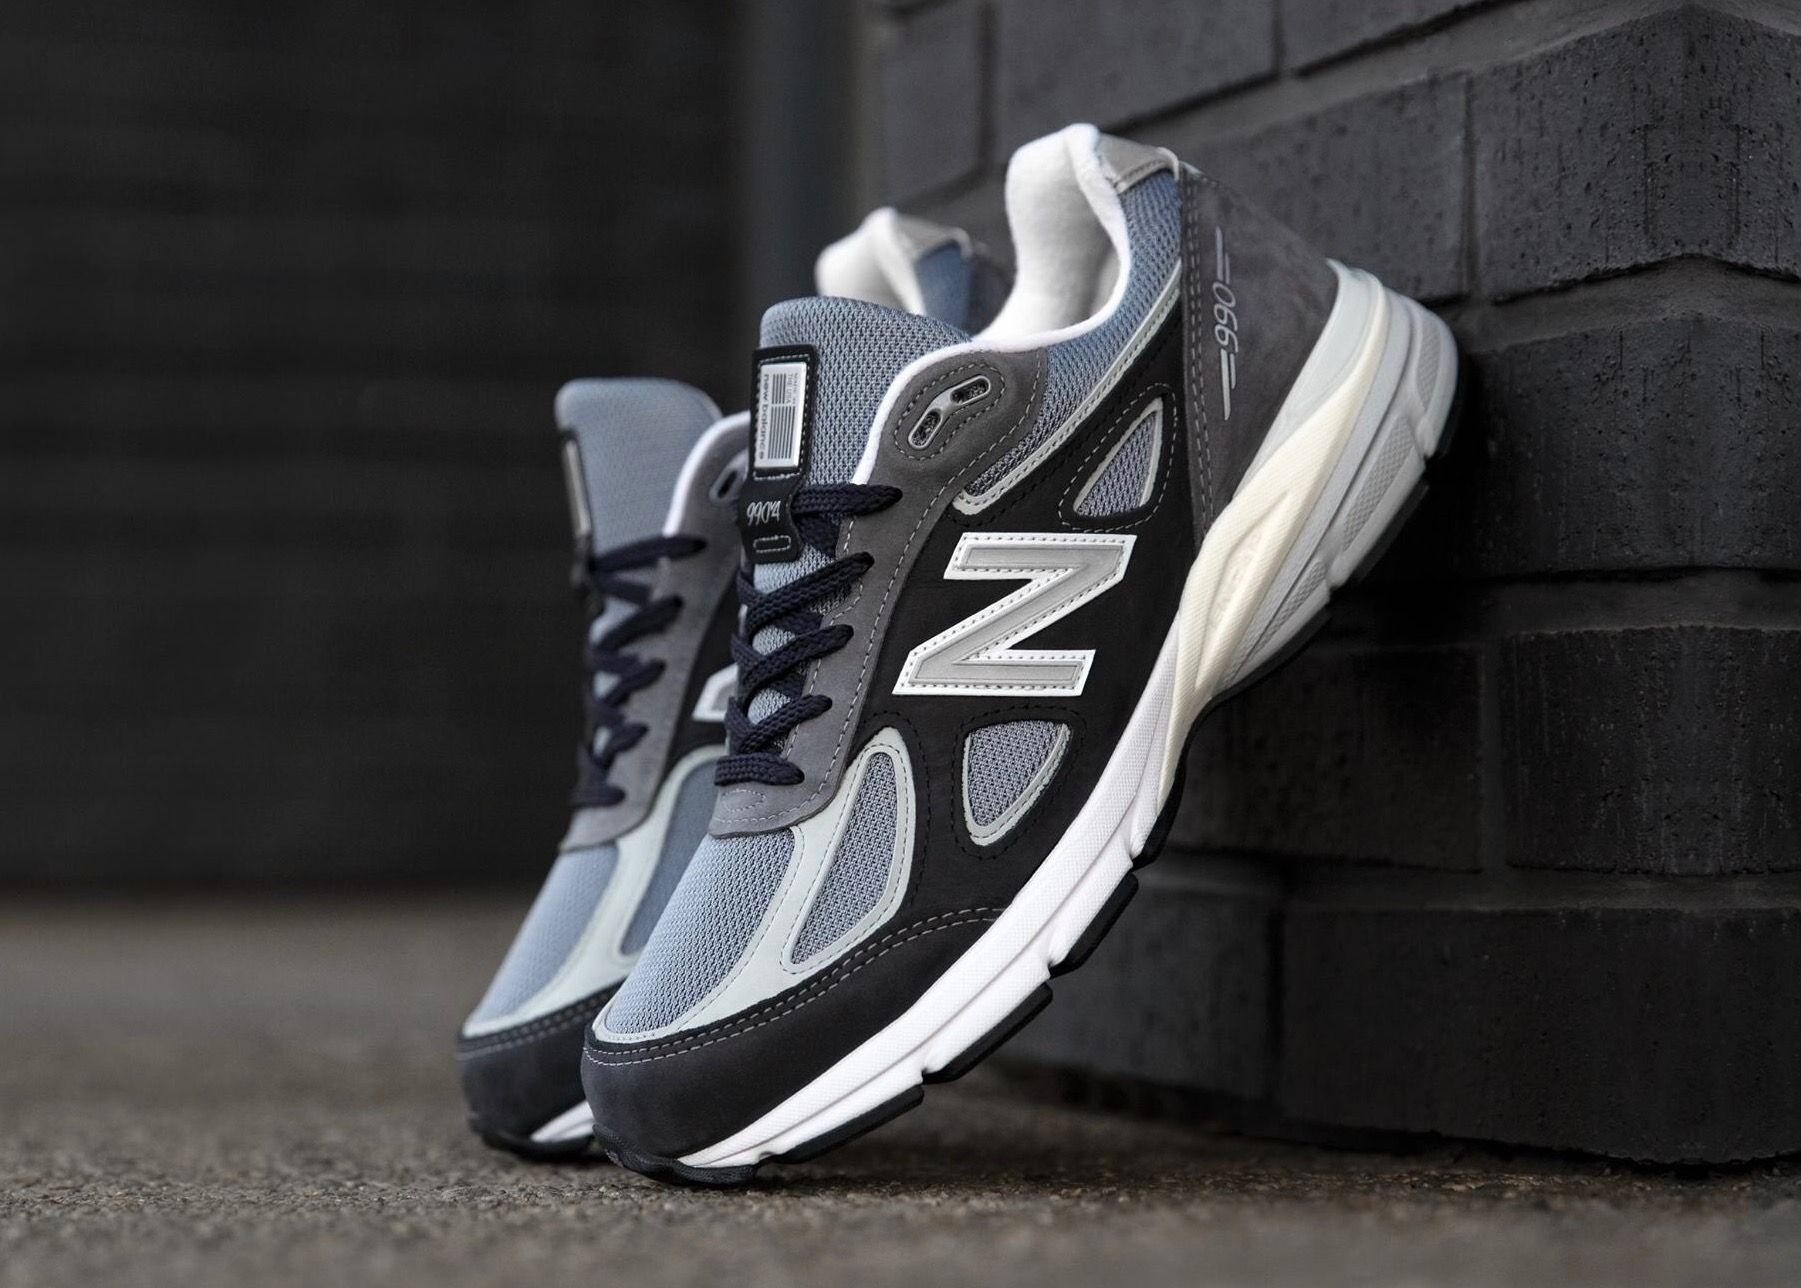 huge selection of a49d4 c1980 New Balance 990v4 | New Balance in 2019 | Shoes, New balance ...